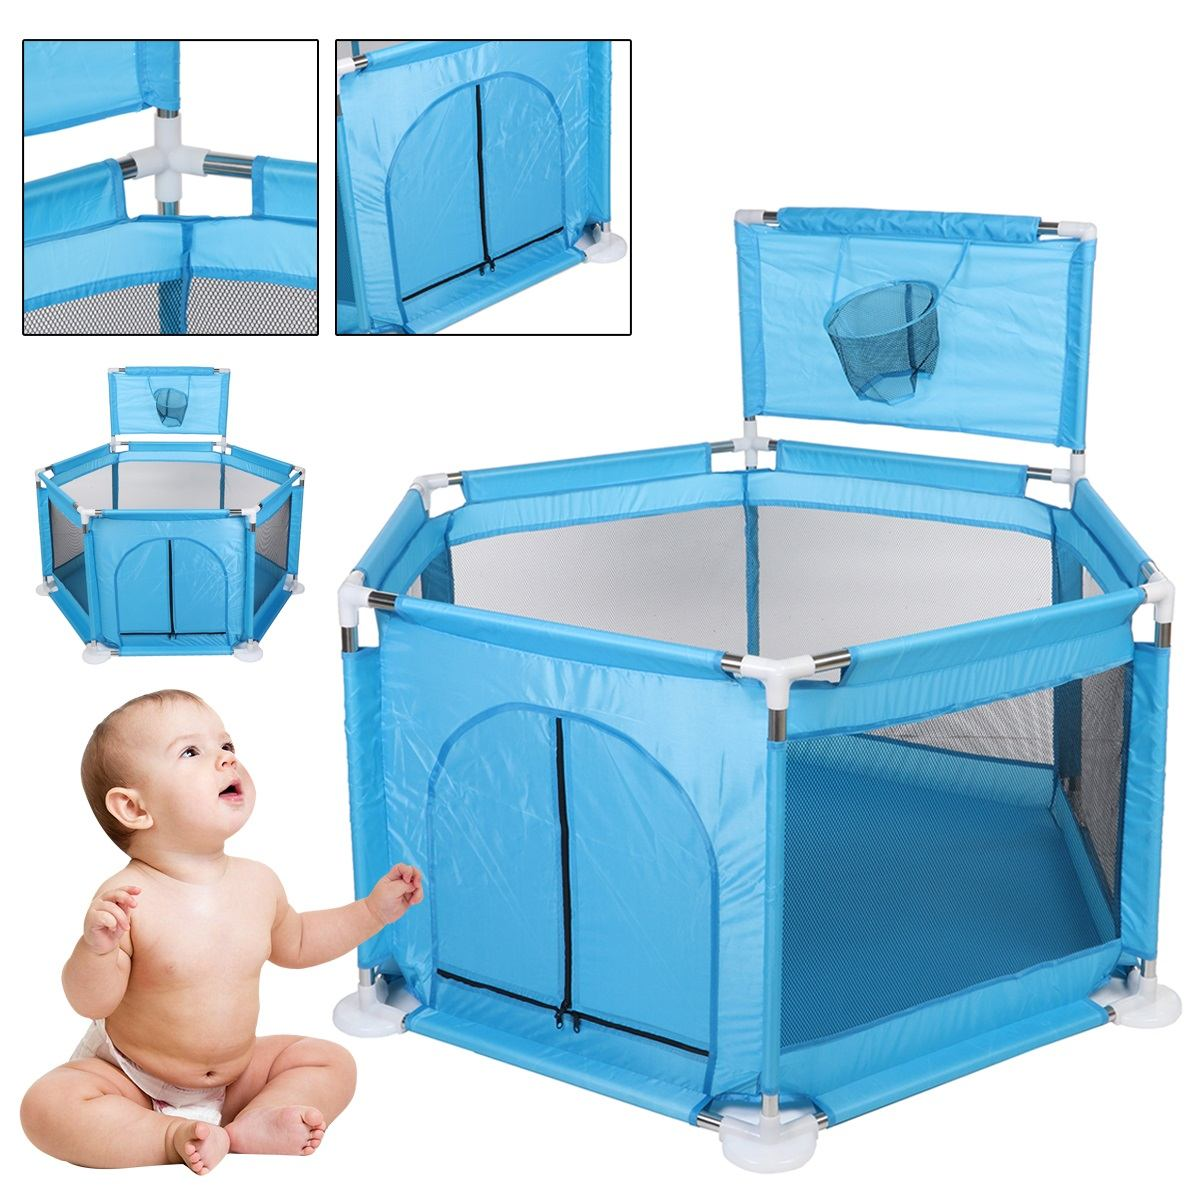 Kids Furniture Playpen Baby Playpen Dry Ball Pool Swimming Pool Safety Barriers Baby Playground Ball Park For 0-3 Years Children